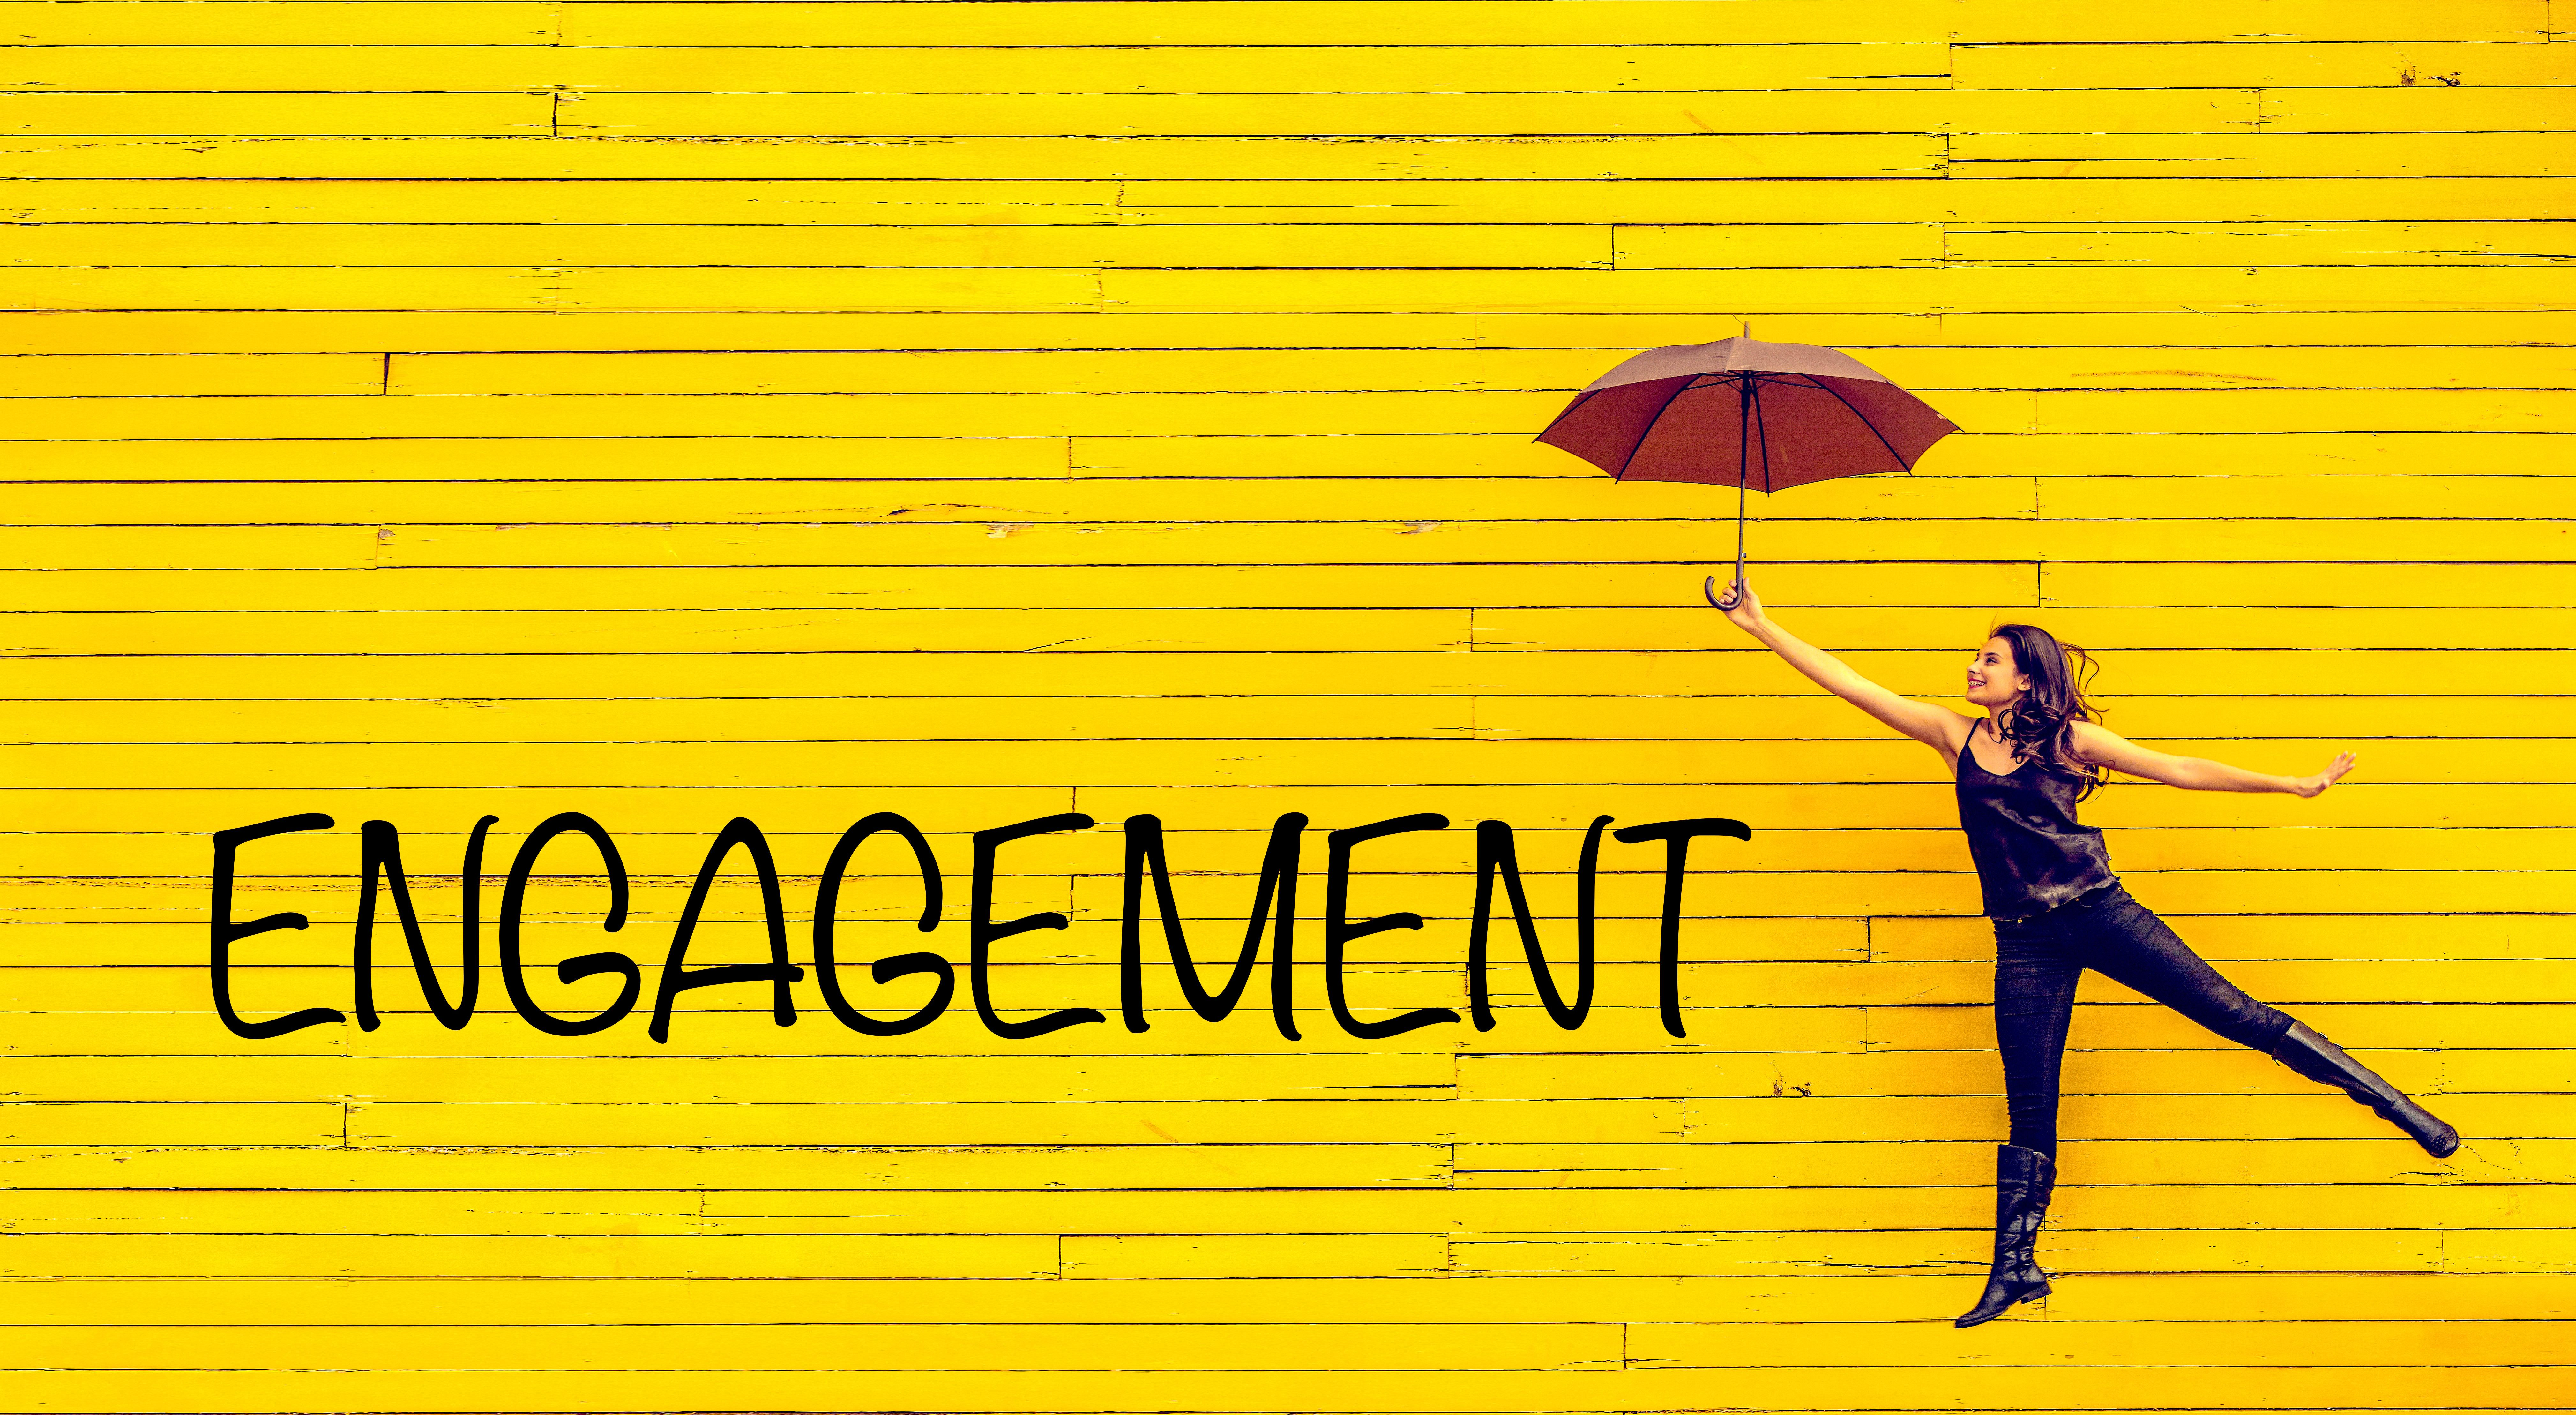 Engagement is not an act, but a habit